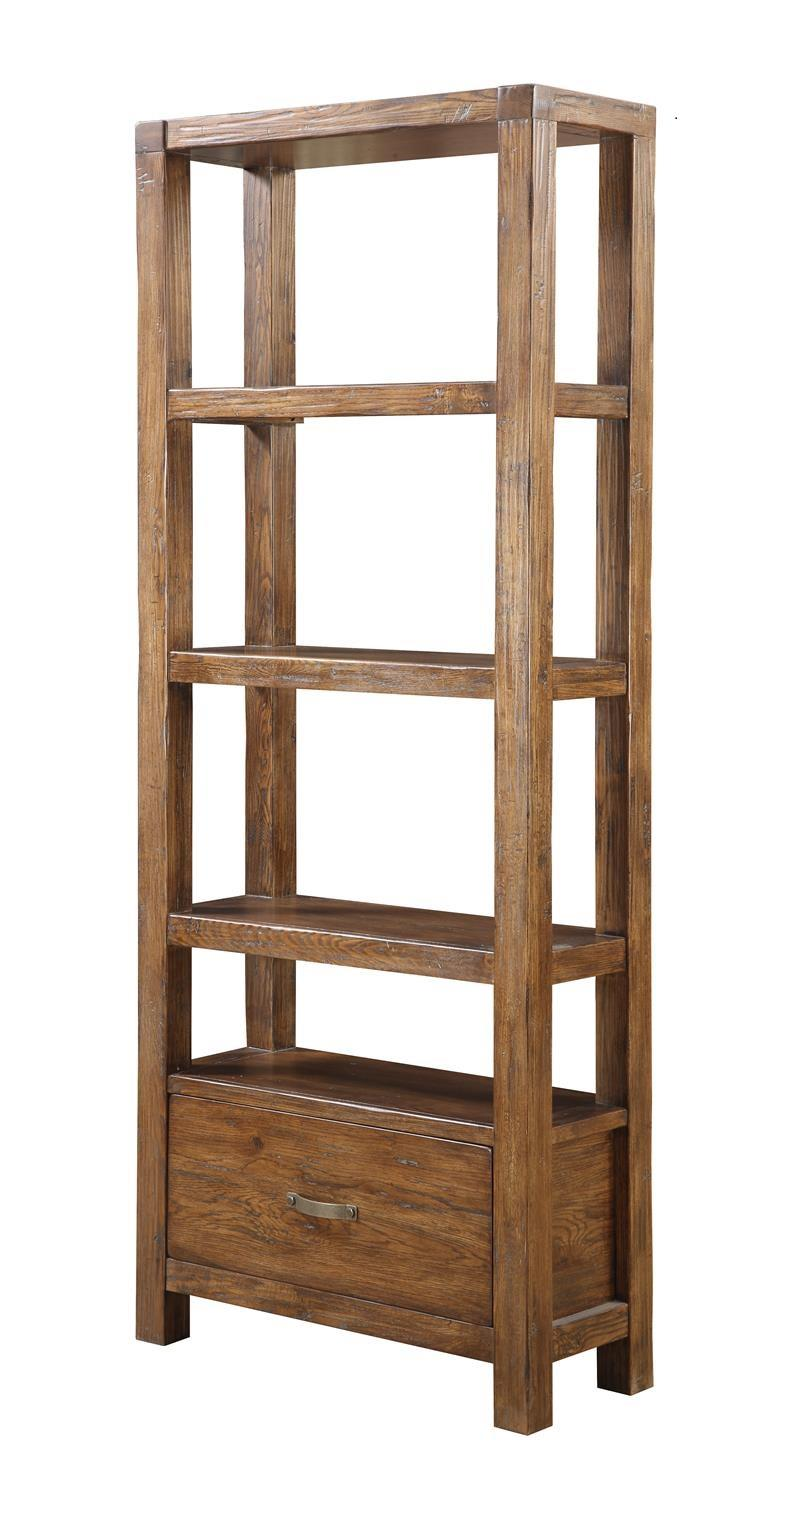 Chambers Creek Etagere by Emerald at Northeast Factory Direct